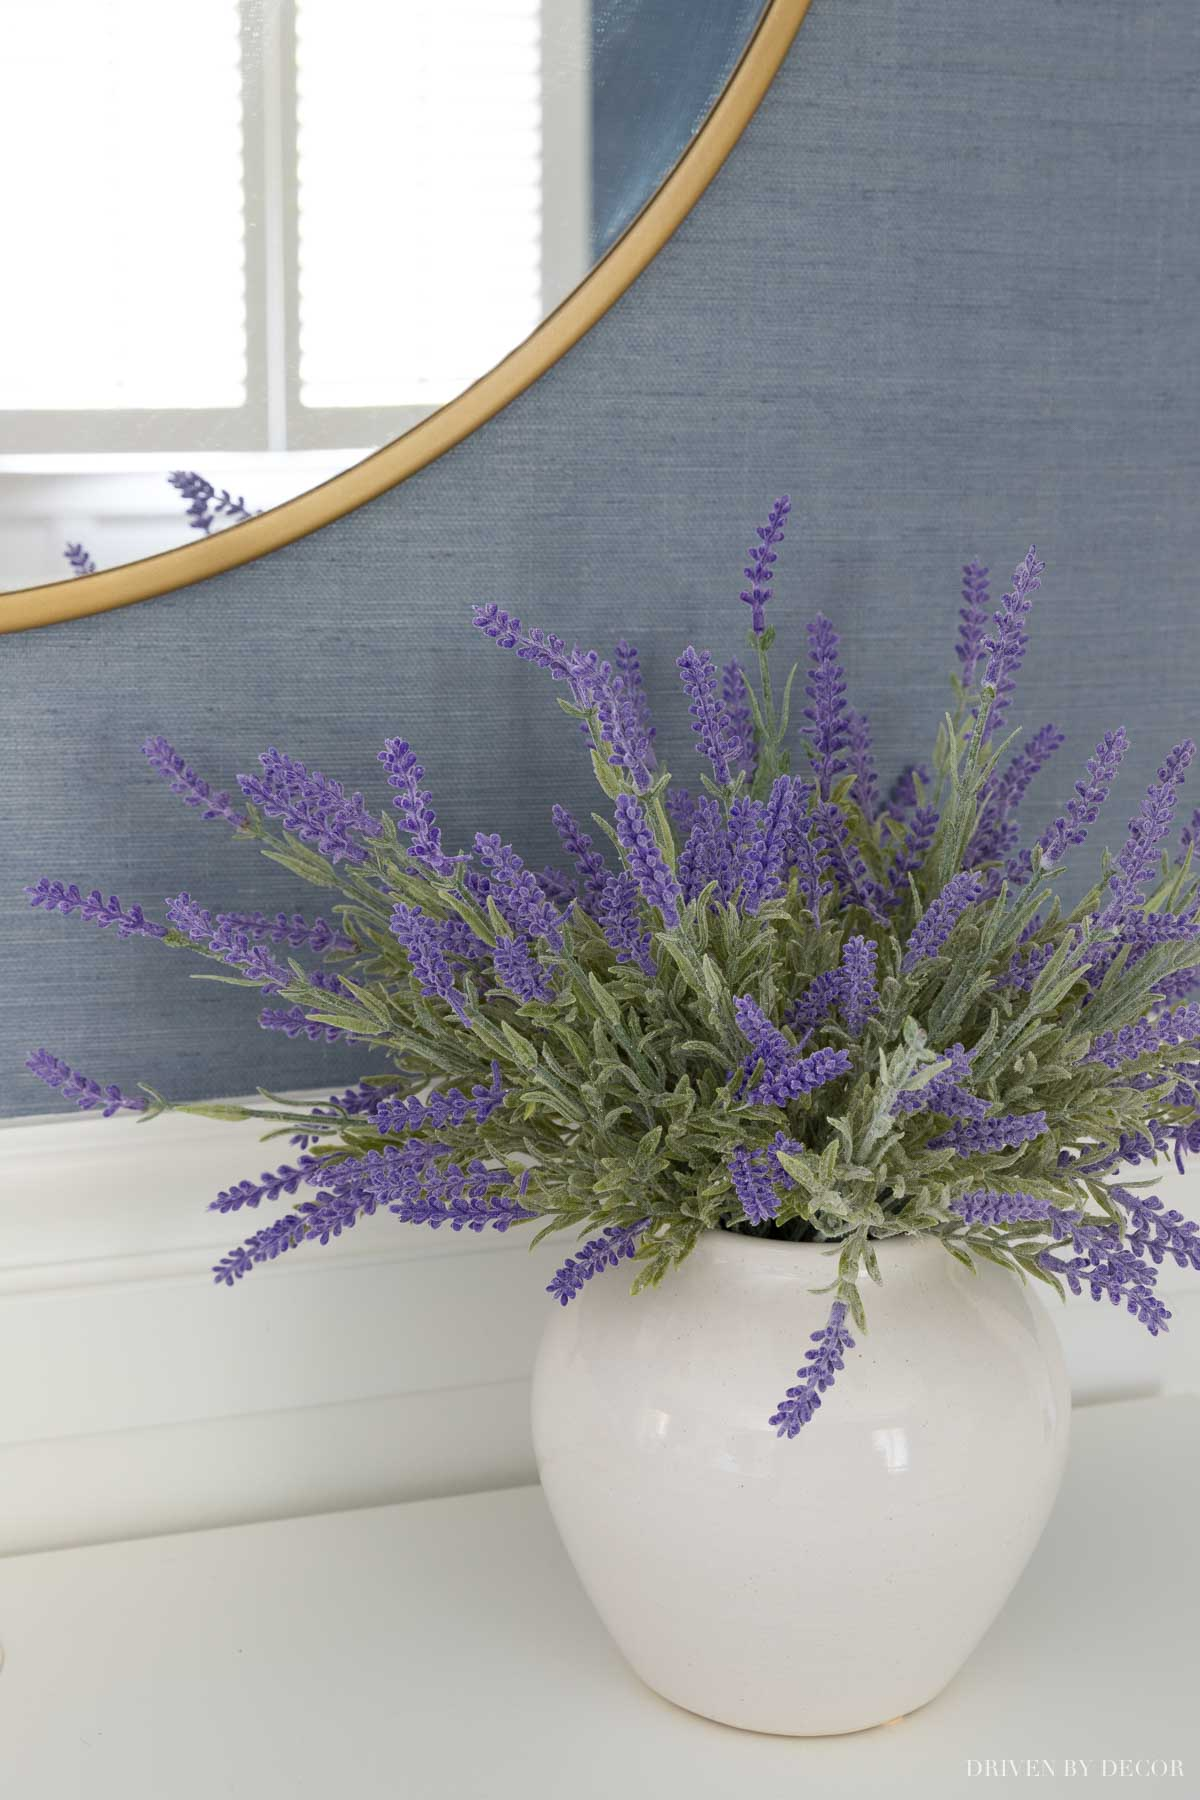 This artificial lavender bundle is such a realistic artificial flower!